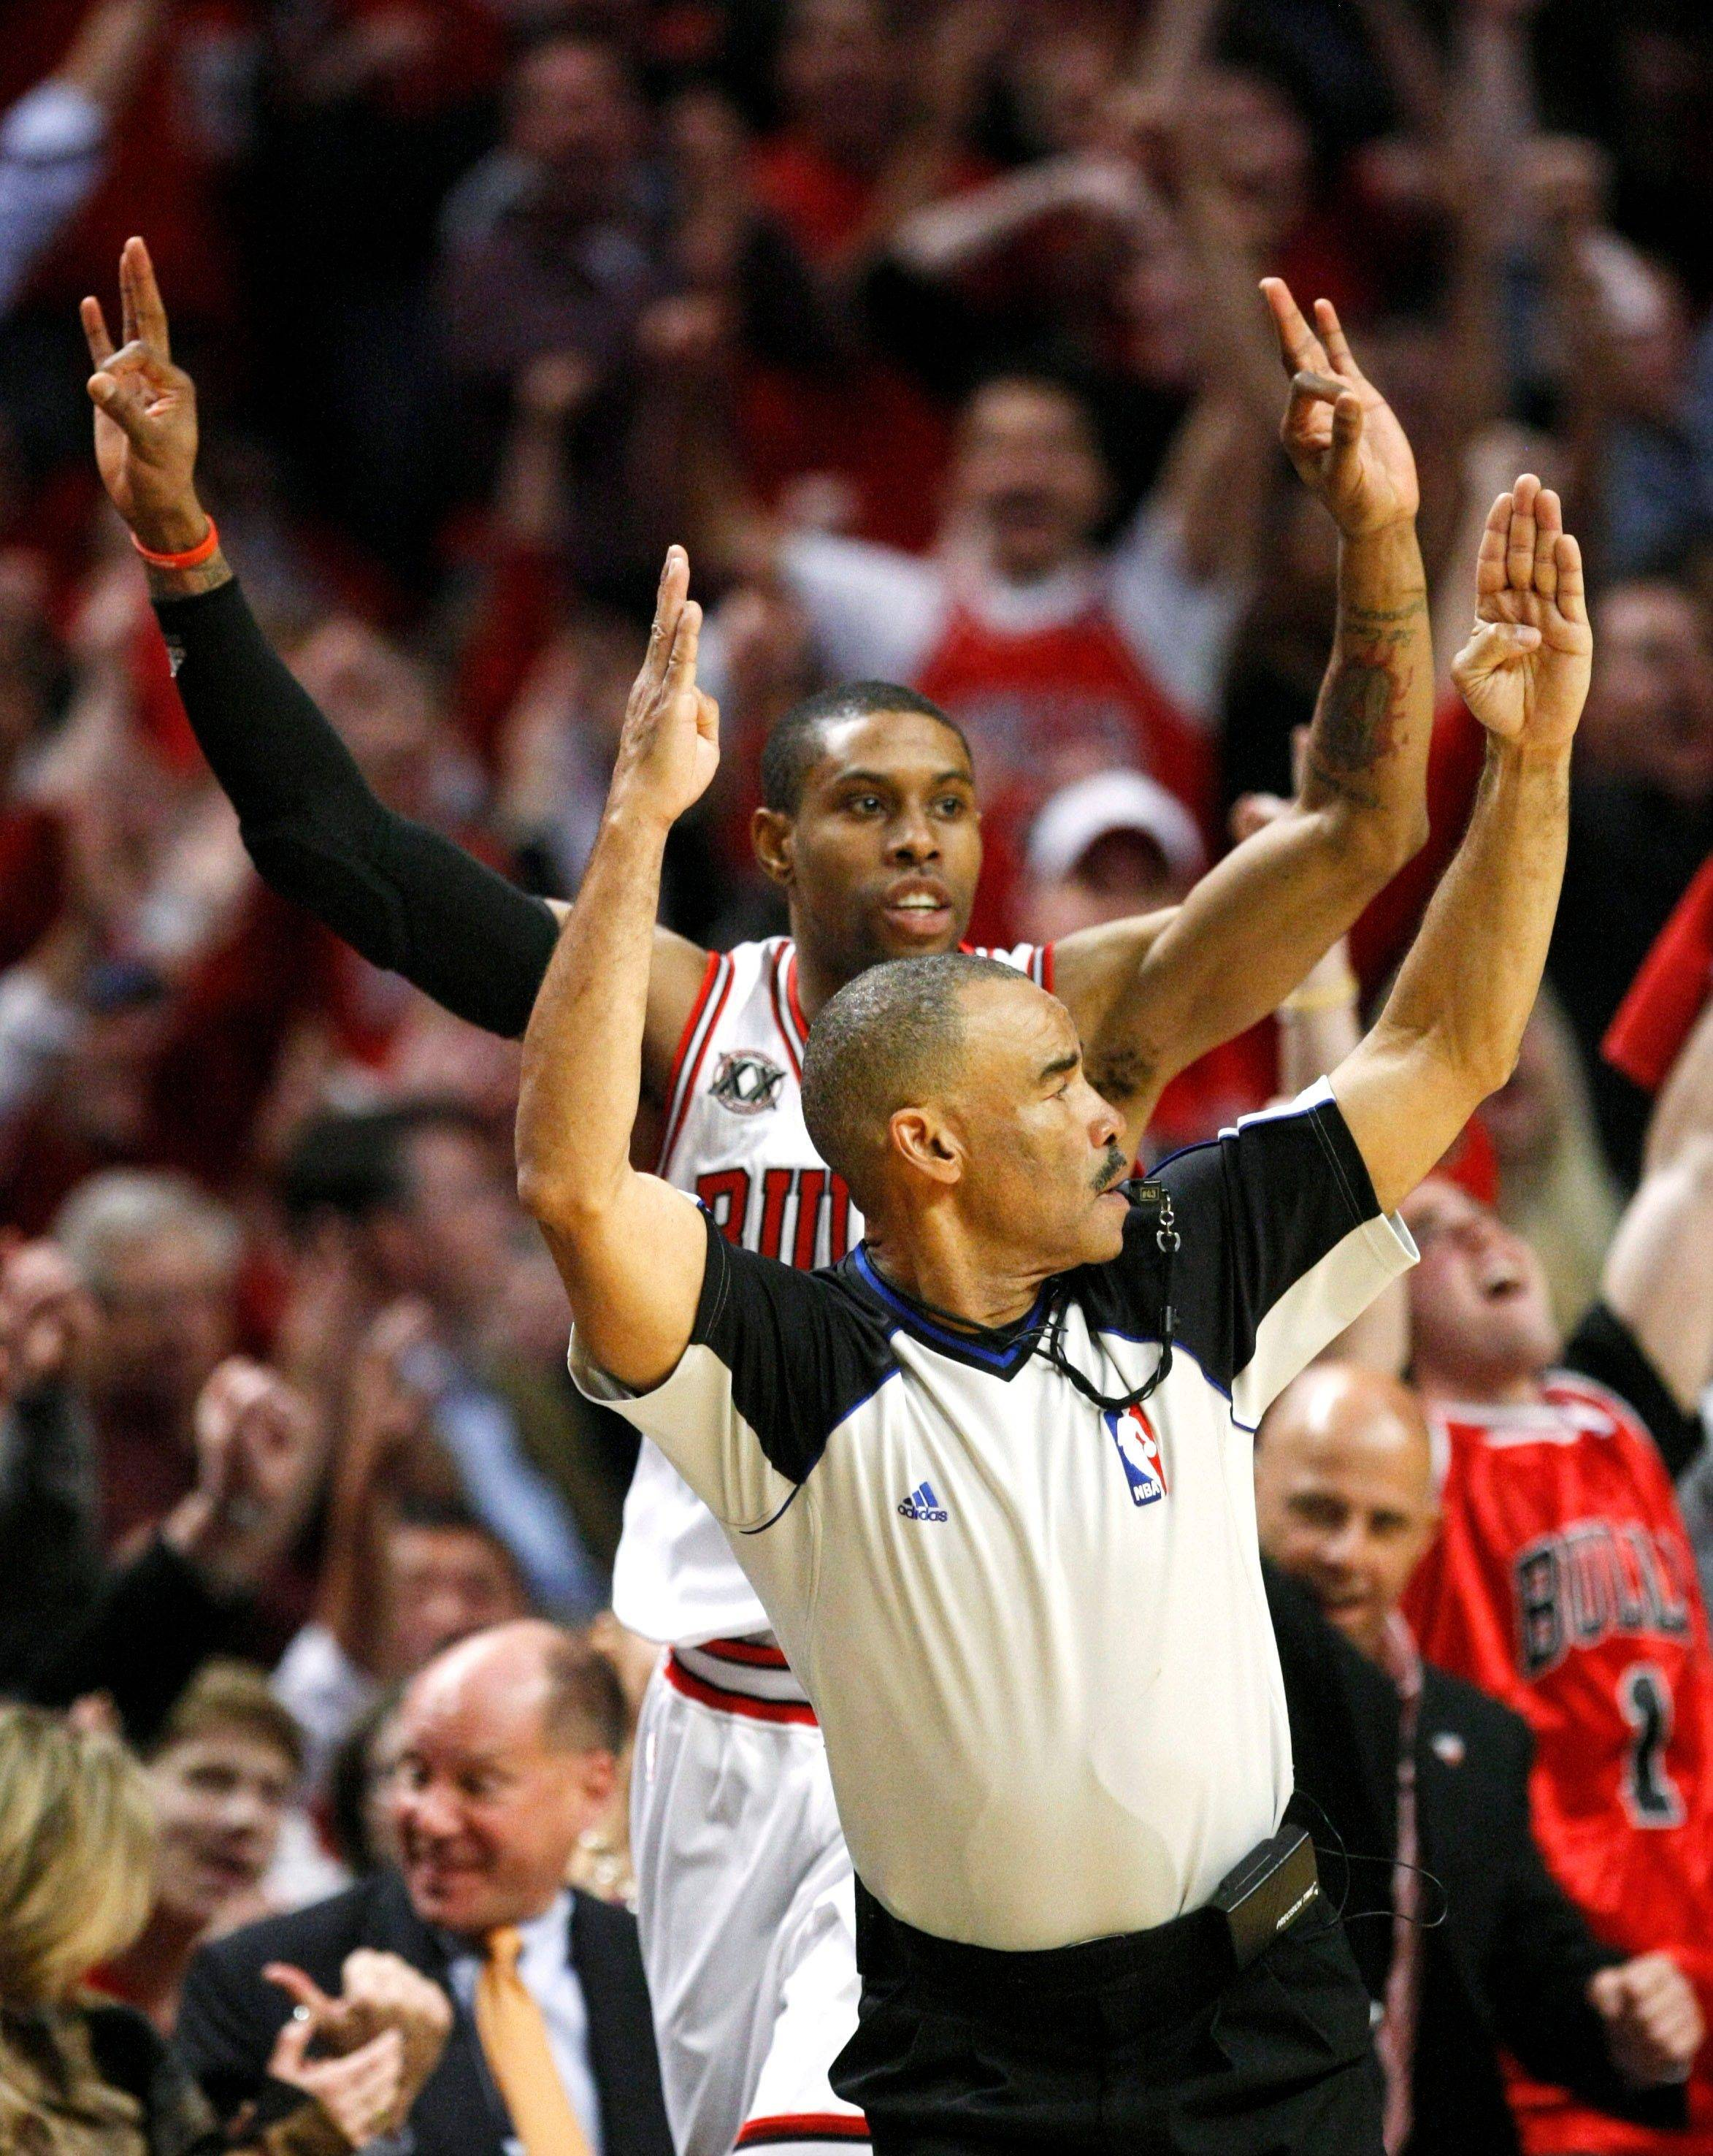 NBA referee Dan Crawford, foreground, and Chicago Bulls point guard C.J. Watson signal his three-point shot during the fourth quarter. The Bulls defeated the Heat 103-82 Sunday.